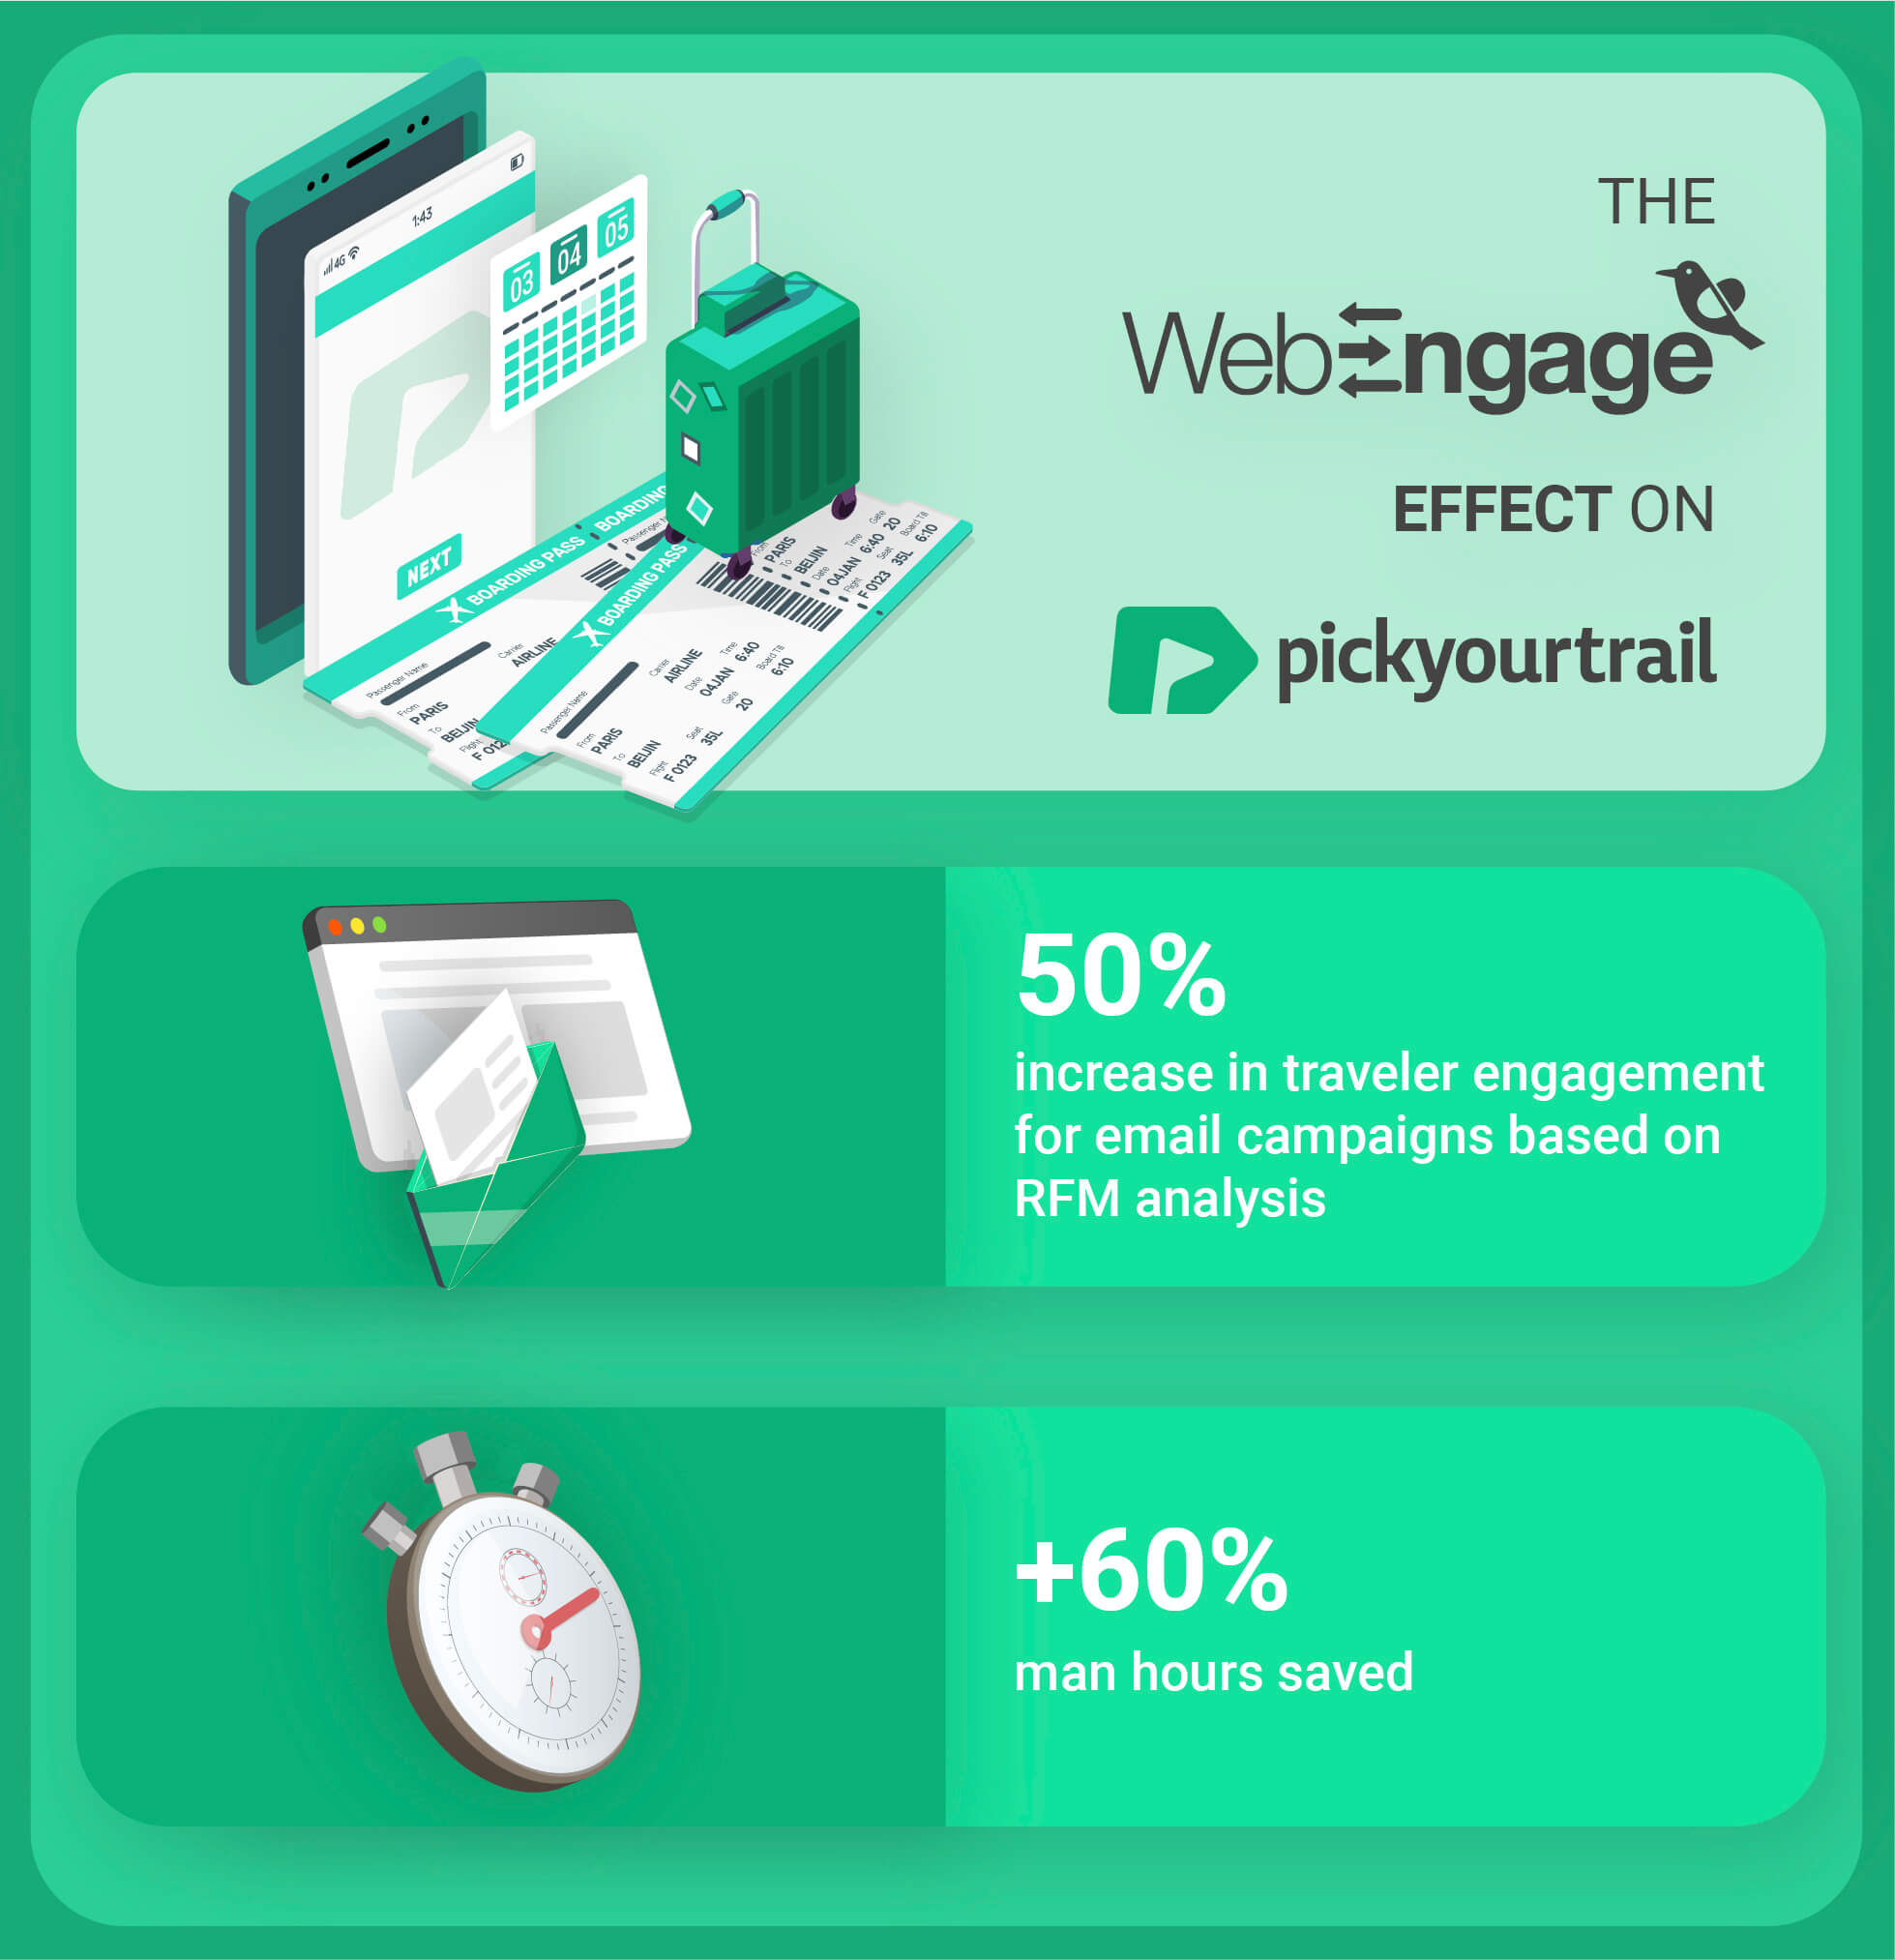 Pickyourtrail witnesses 50% increase in user engagement | Case Study